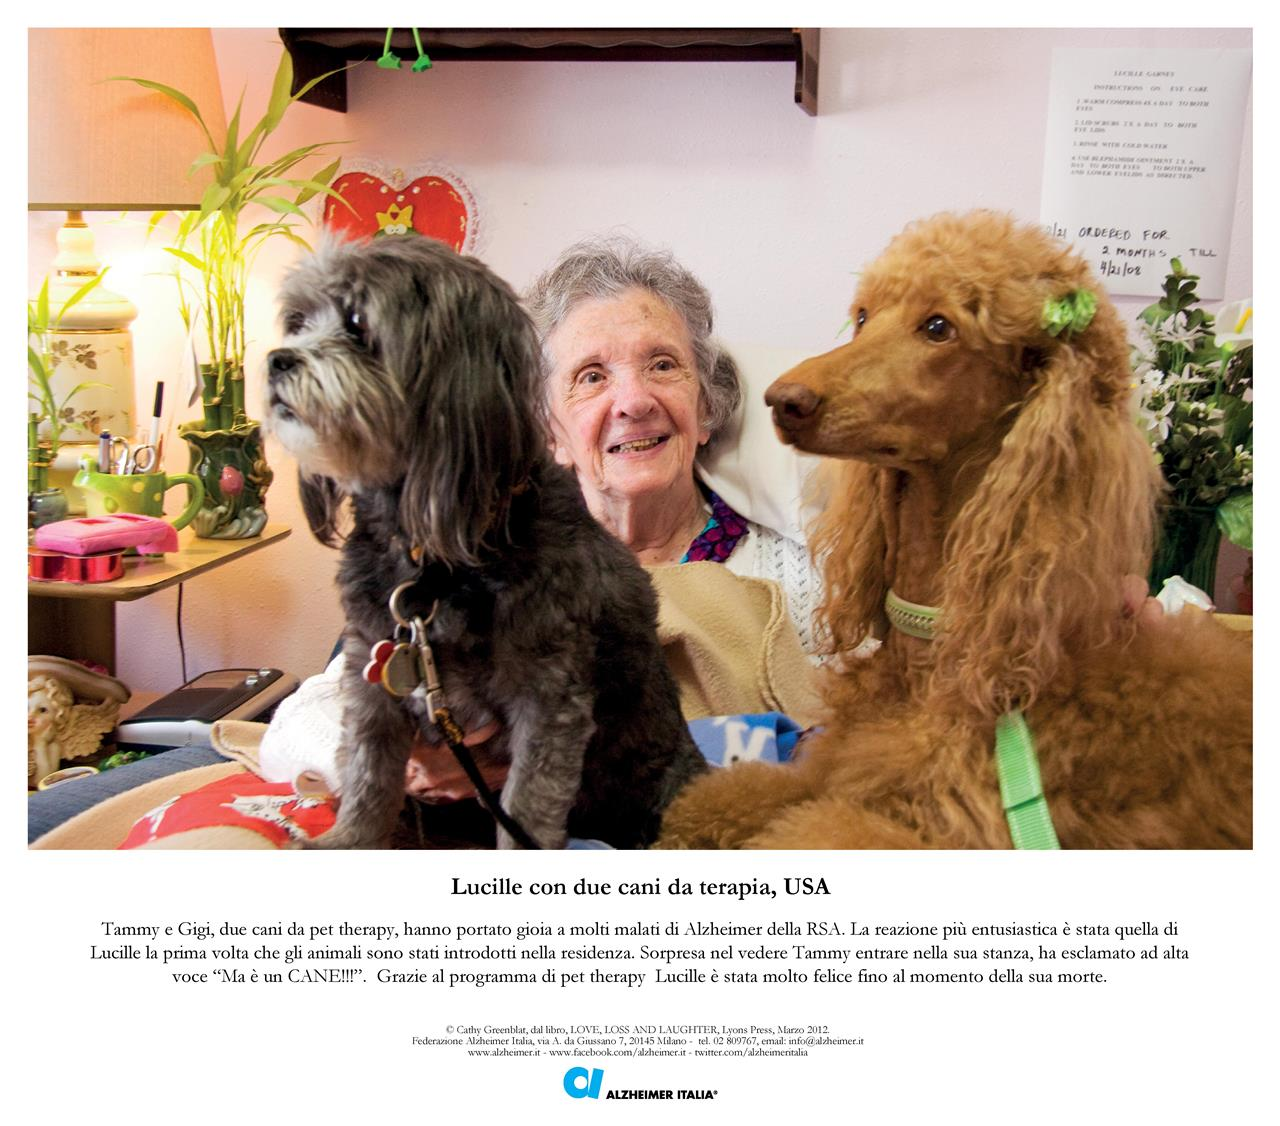 Lucille And Two Therapy Dogs Greenblat Love, Loss And Laughter